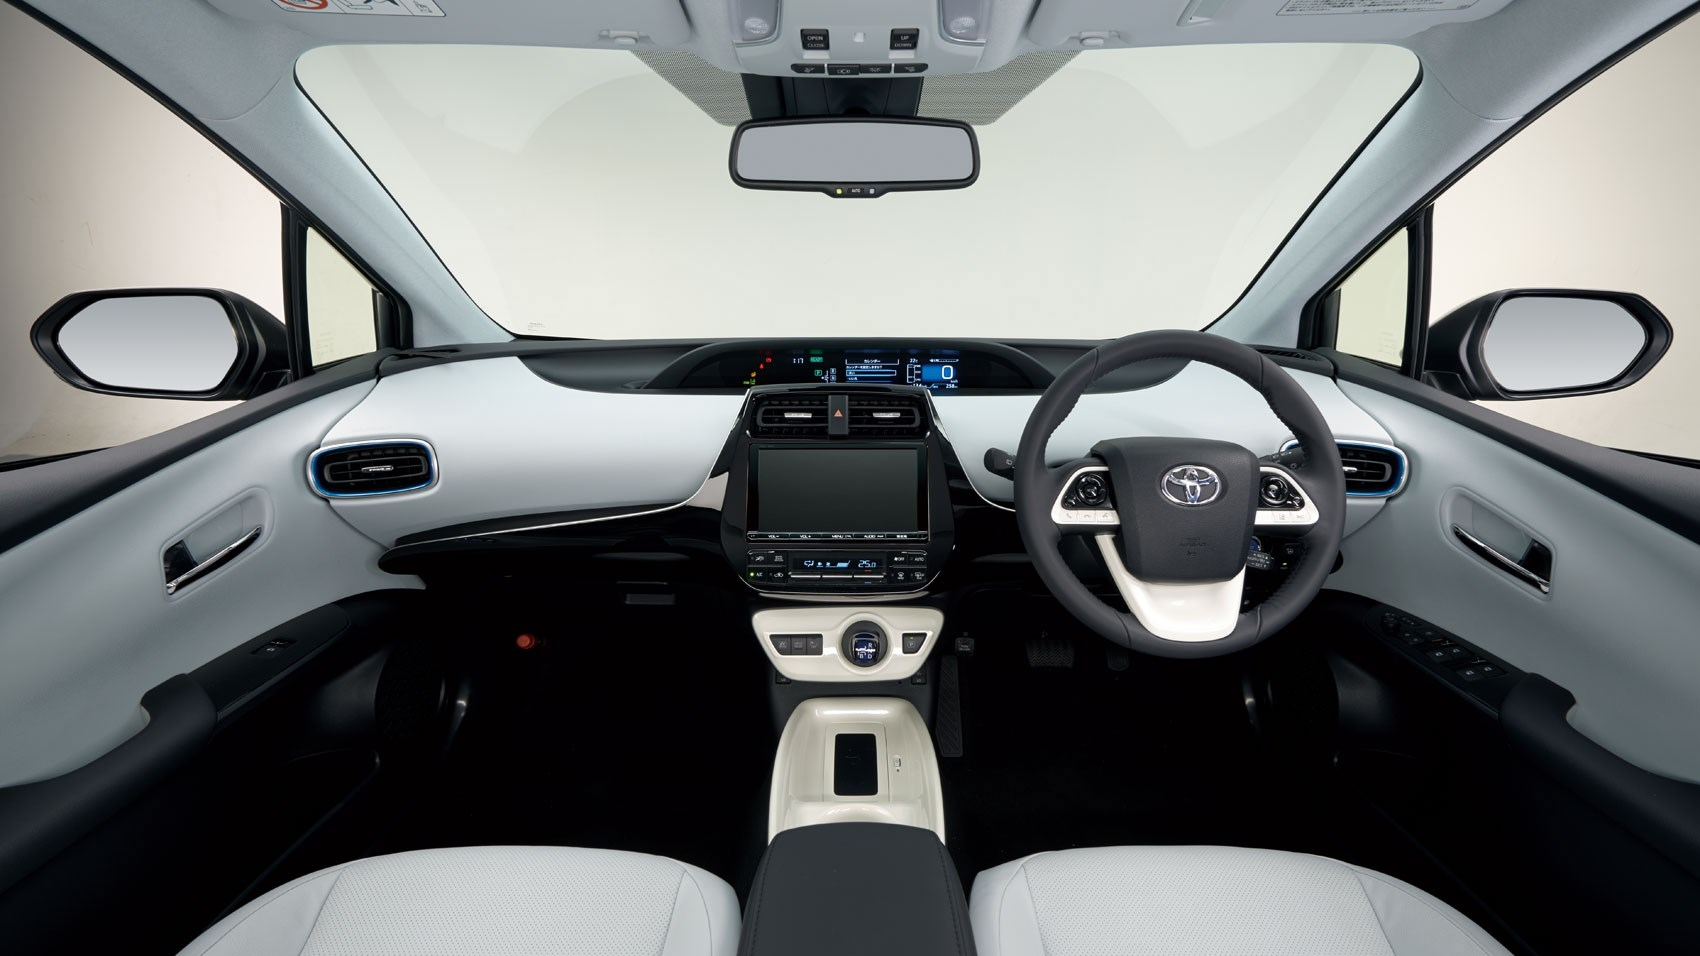 amusing-design-of-the-white-dash-ideas-added-with-black-steering-wheel-and-white-seats-as-the-toyota-prius-2016-interior